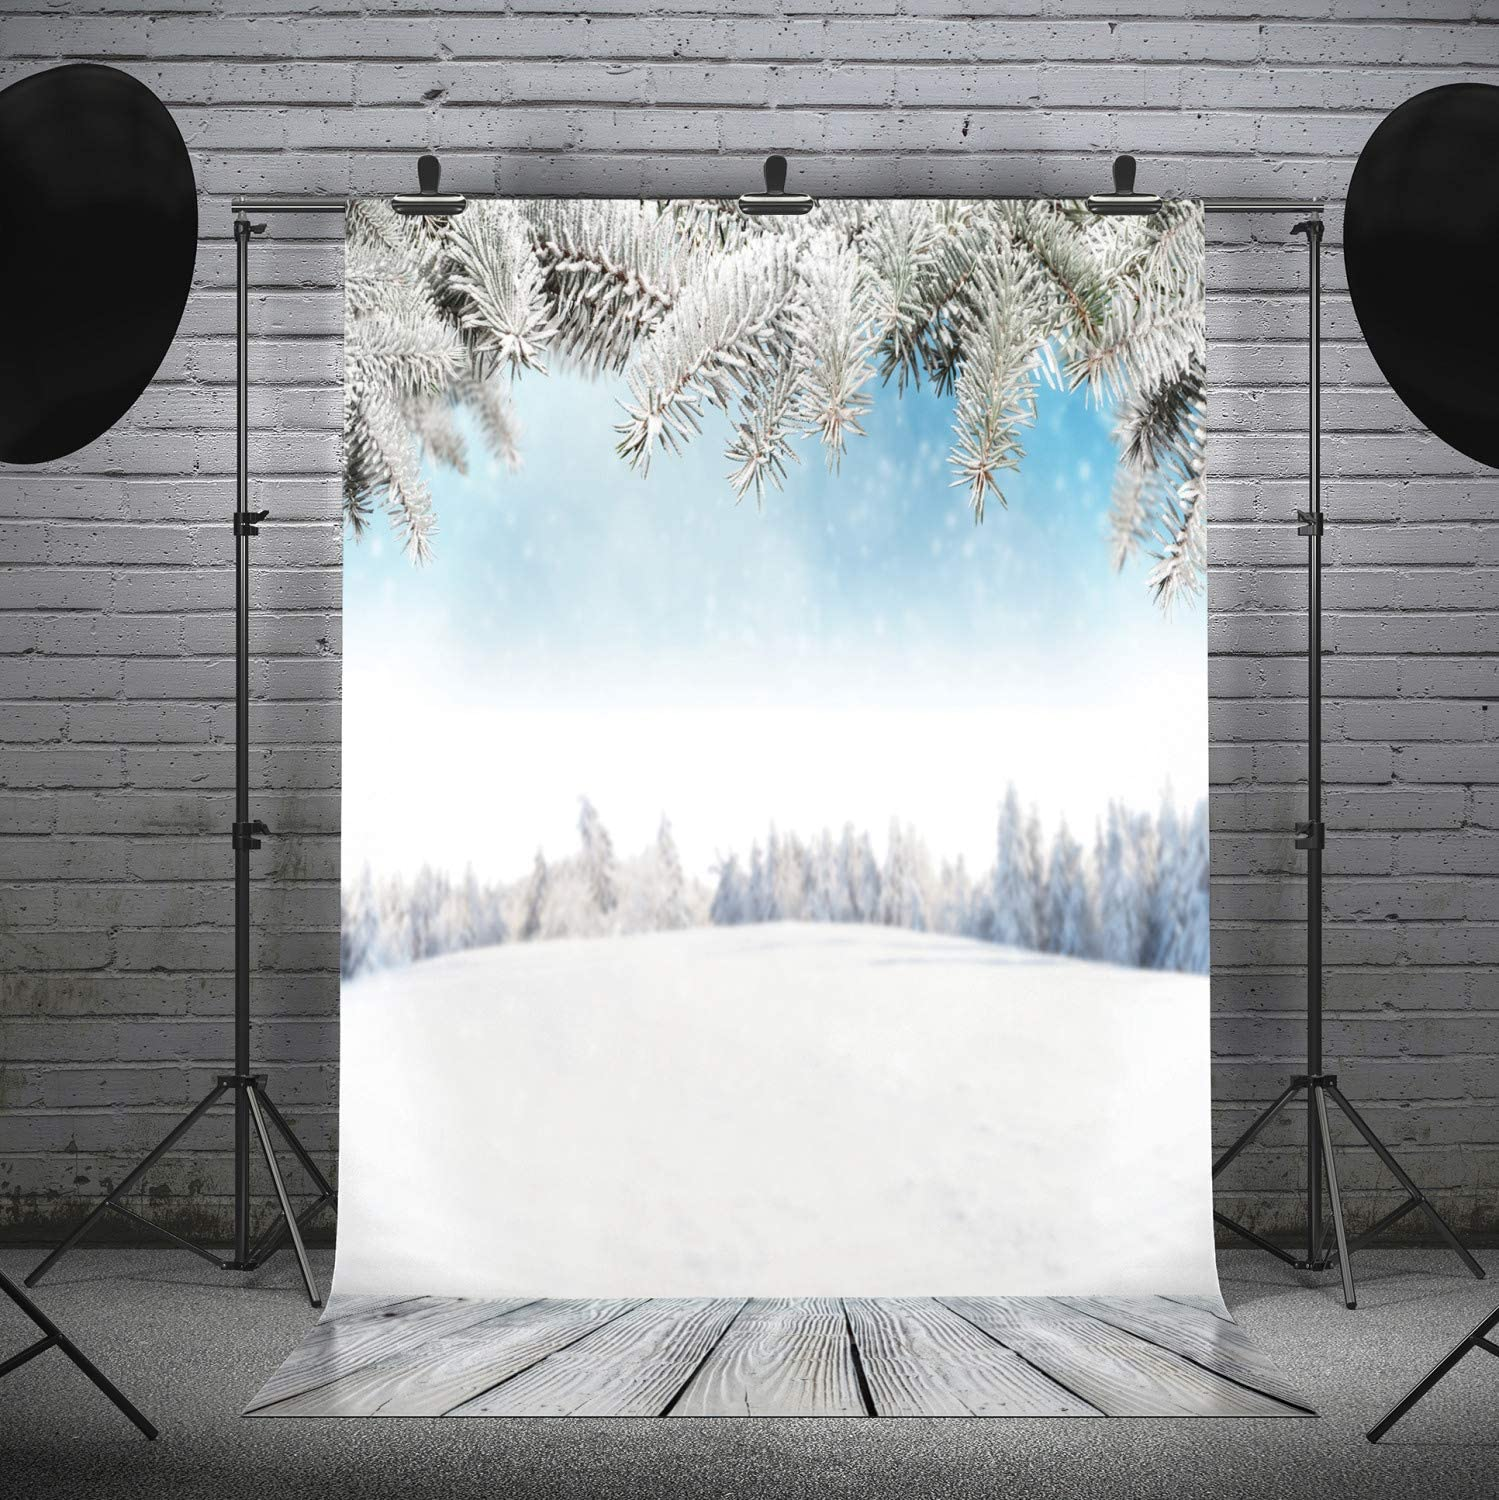 Lunarable Winter Photography Backdrop, Snowy Pine Tree Branches and Landscape Scene New Year Blurry Woods, Photo Studio Background Prop Wall and Party Decor, 6' x 11.5', White Baby Blue and Dimgray